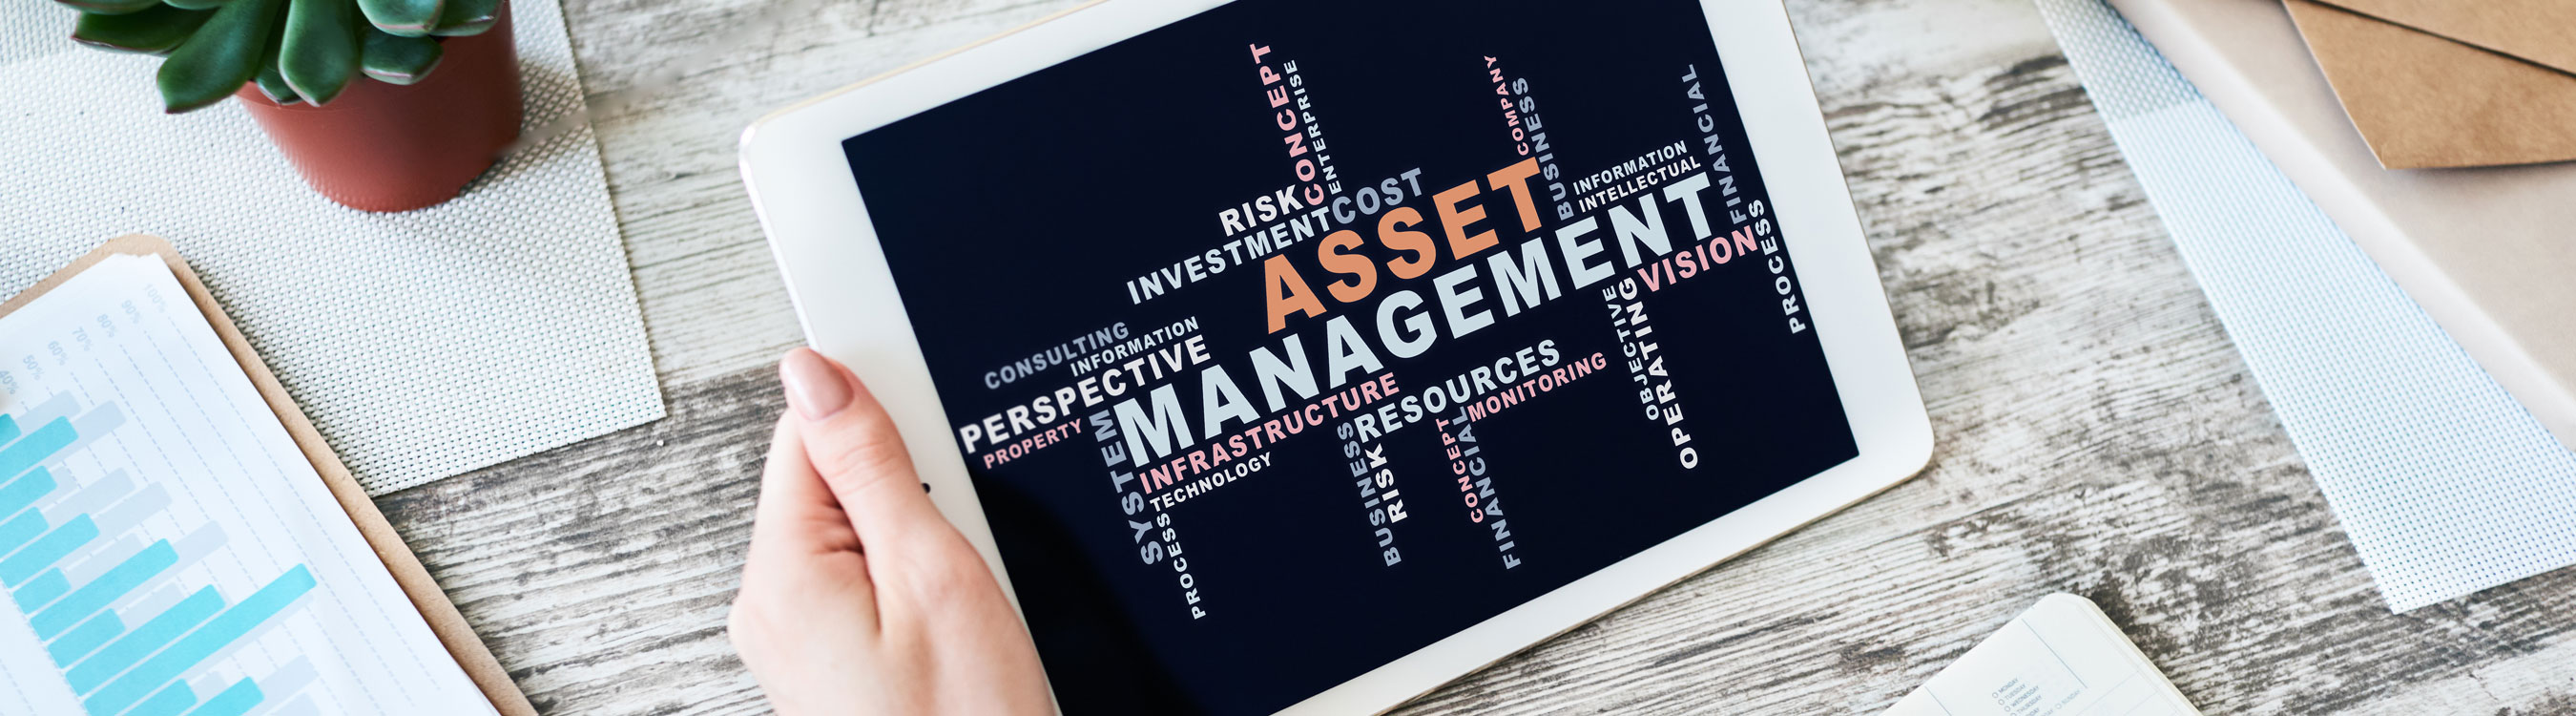 IT Asset Management | Hampshire, Dorset, Wiltshire, Sussex, SurreyIT Asset Management